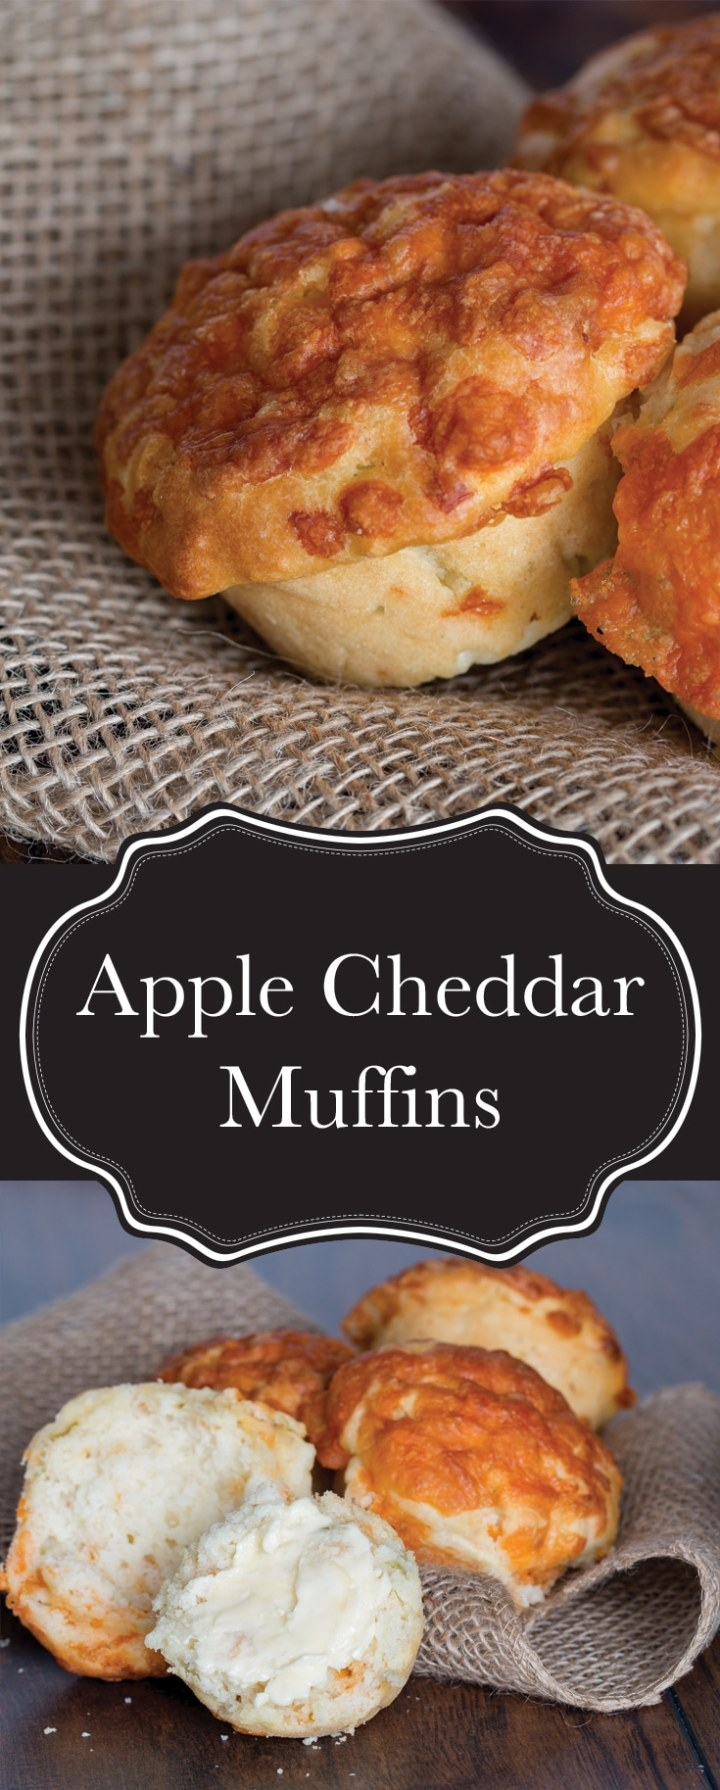 My apple cheddar muffins are half biscuit, half muffin and all flavour. They're totally the kind of snack kids love, and call pull double duty as a side for a hearty fall dinner, like my harvest stew.